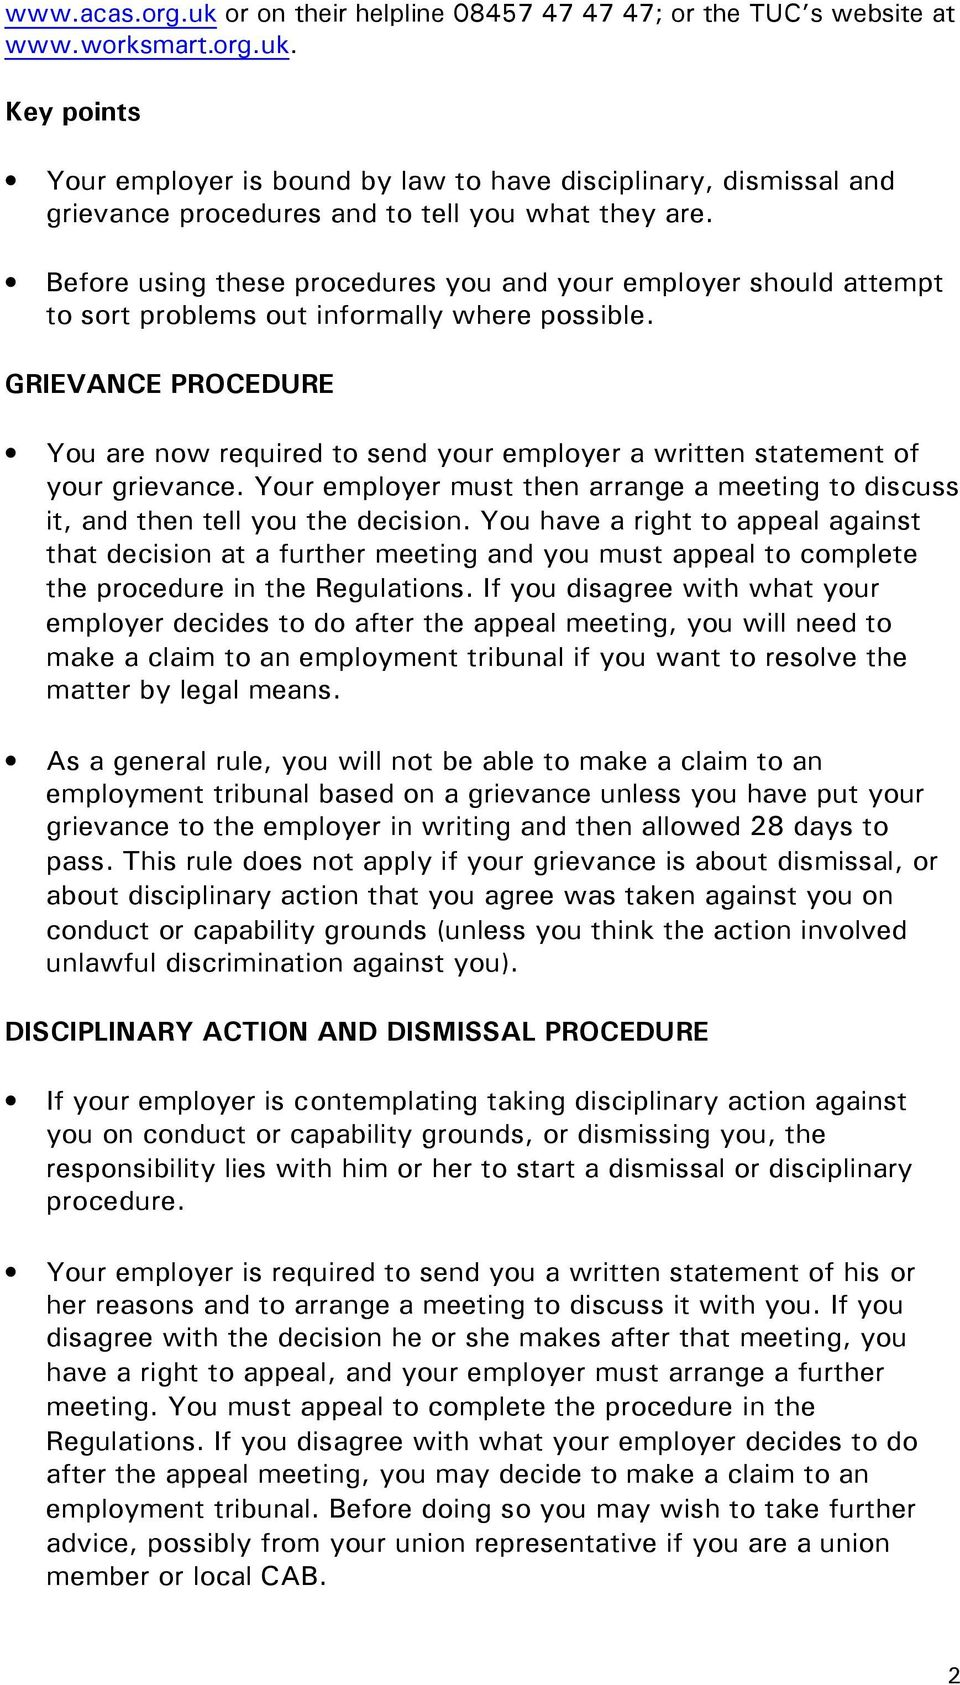 GRIEVANCE PROCEDURE You are now required to send your employer a written statement of your grievance. Your employer must then arrange a meeting to discuss it, and then tell you the decision.